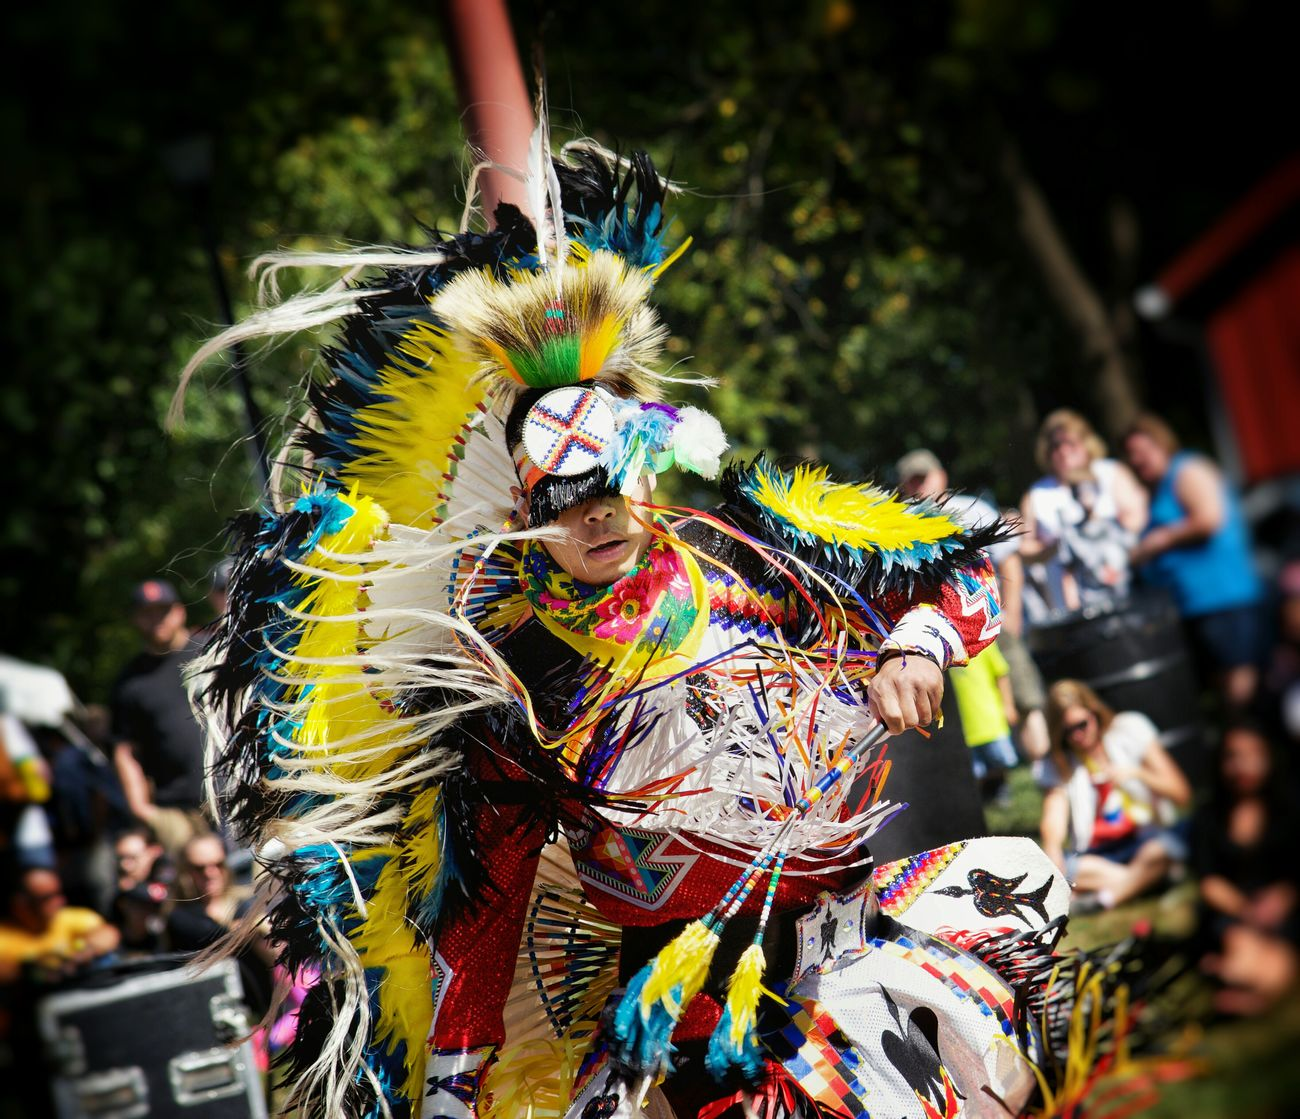 Captured this photo of a Native American dance portraying a battle between two warriors at a local heritage festival..Capture The Moment Native American Nativebeauty  Native Dancer Dance Battle Warrior Bright Colors Beautiful Festivals